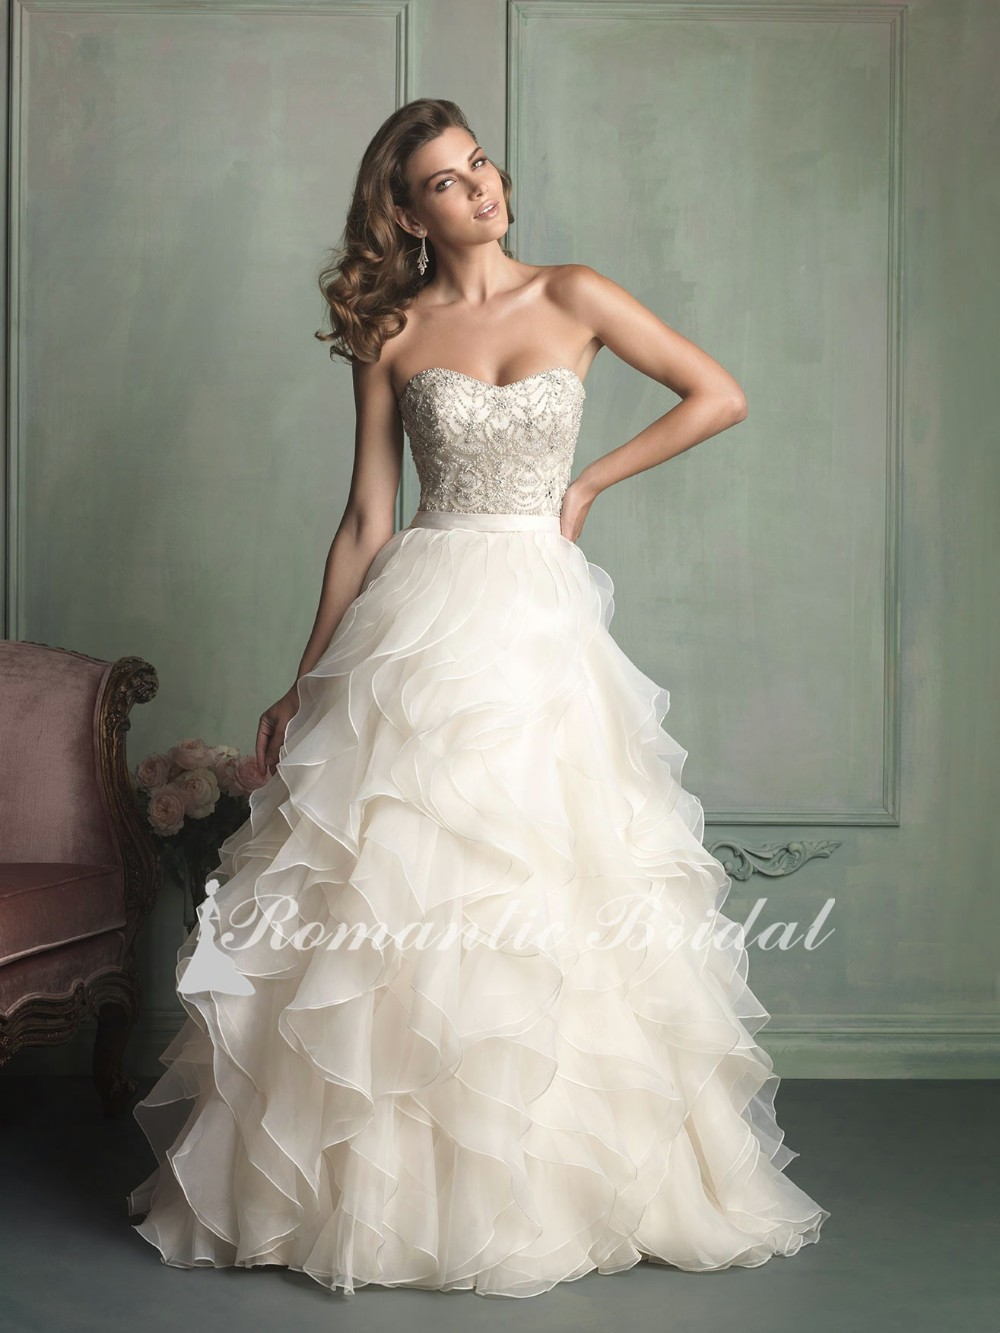 0010 Stunning Sweetheart Gown Champagne Organza Floor Length Ruffled Layer Beading  glitter wedding dresses 9673ab0076fd